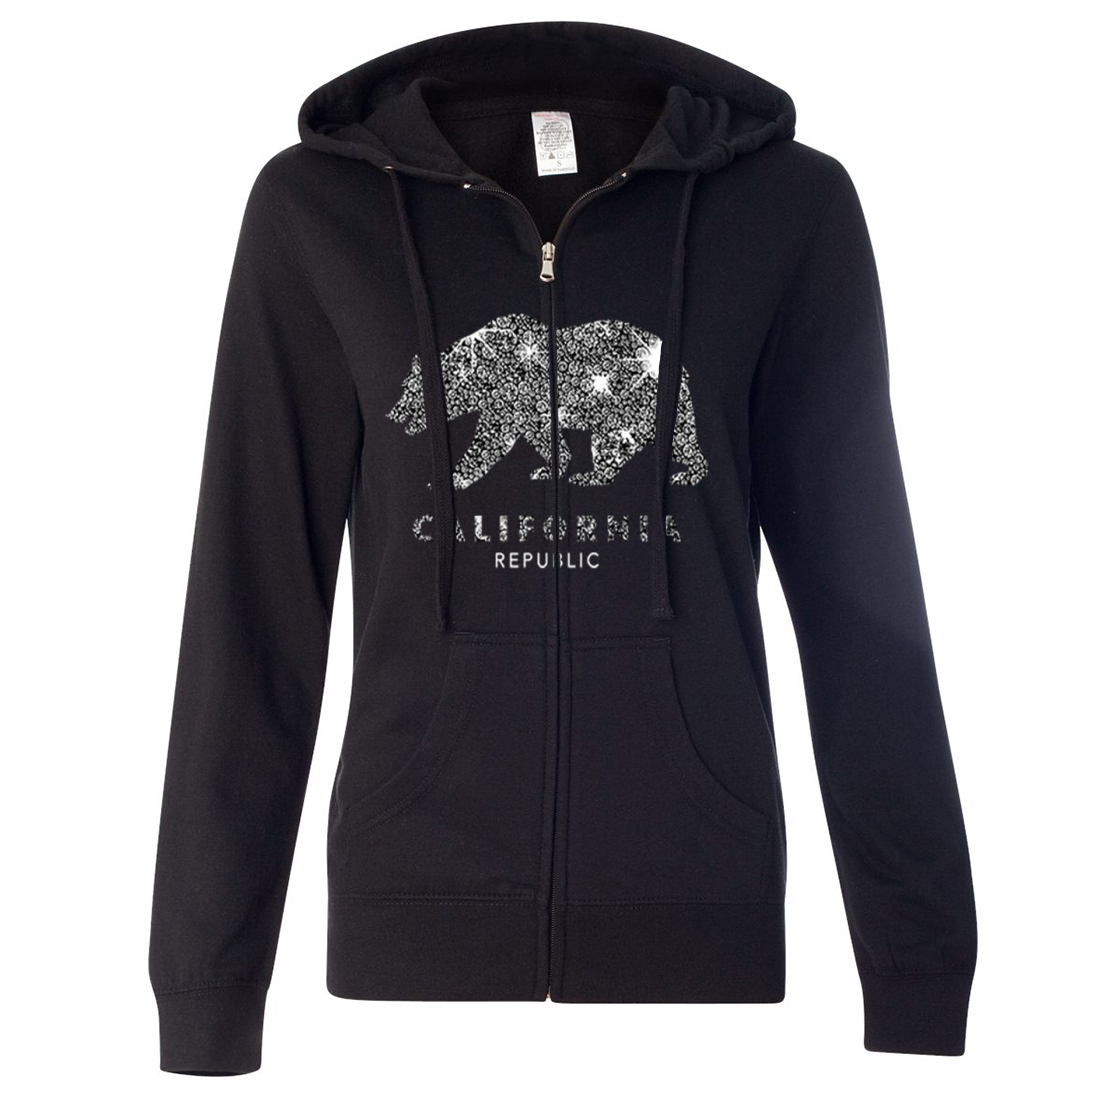 California Republic Sparkle Ladies Lightweight Fitted Zip-Up Hoodie